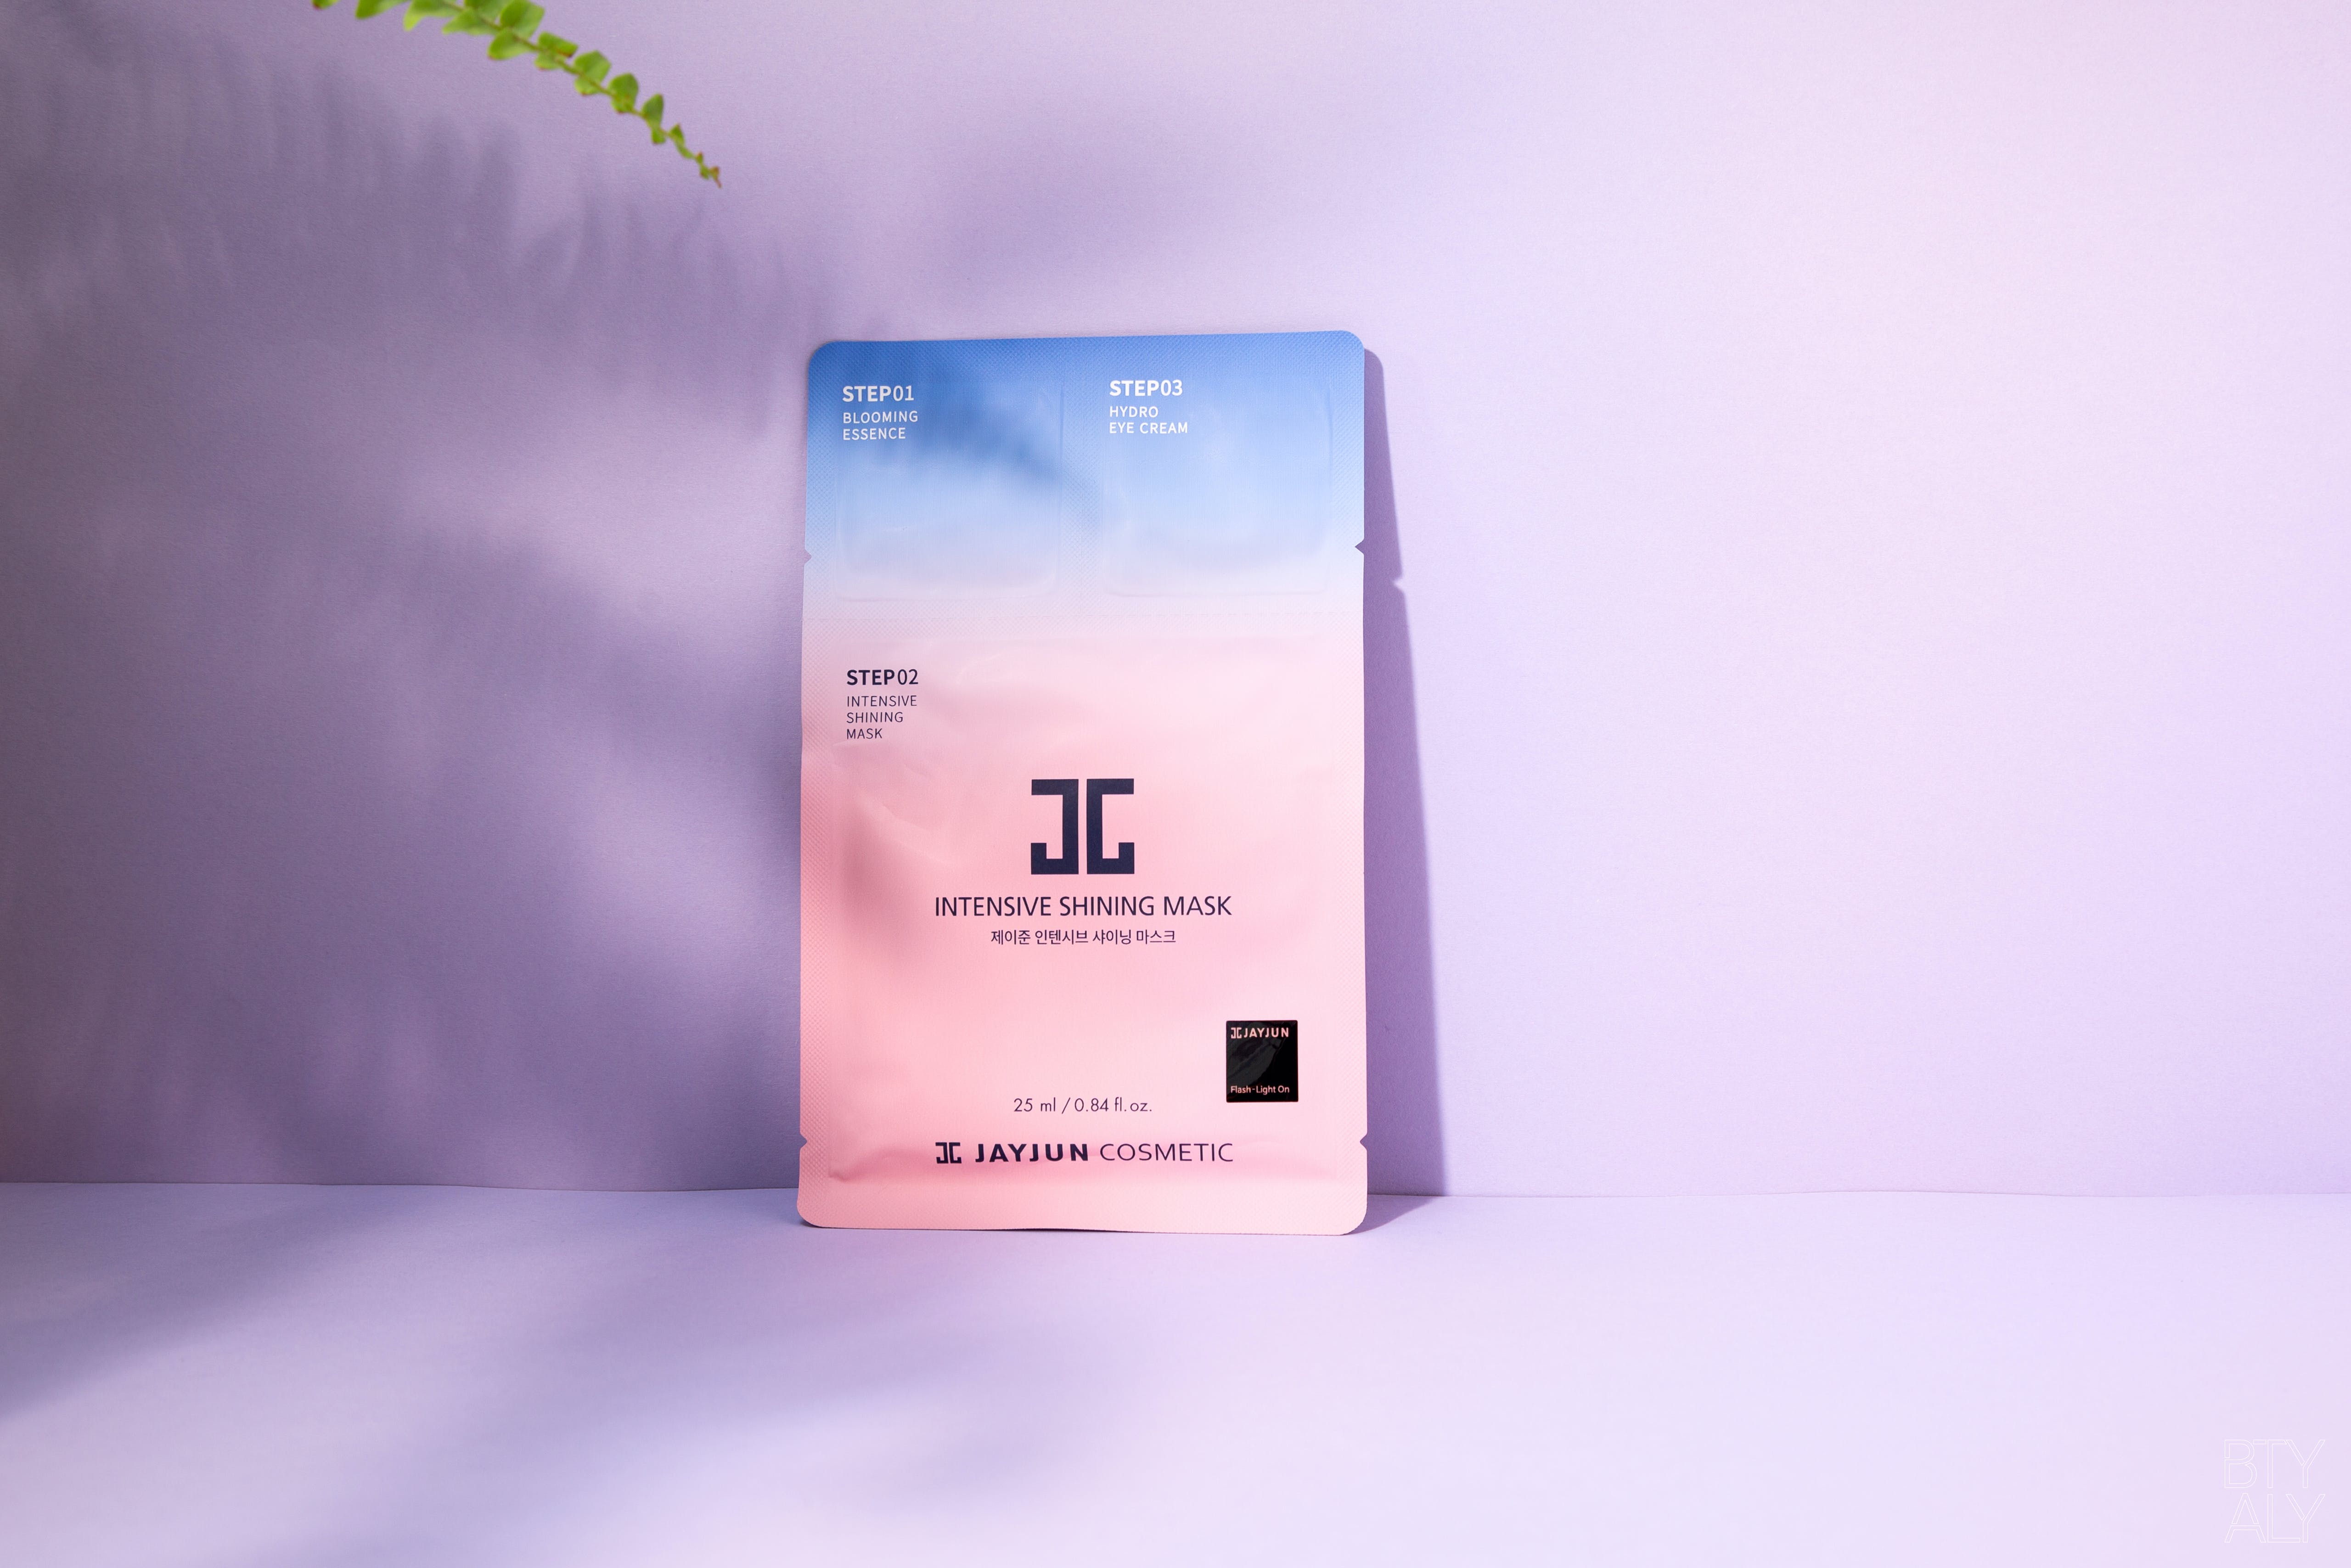 Jay Jun Cosmetics Intensive Shining Mask